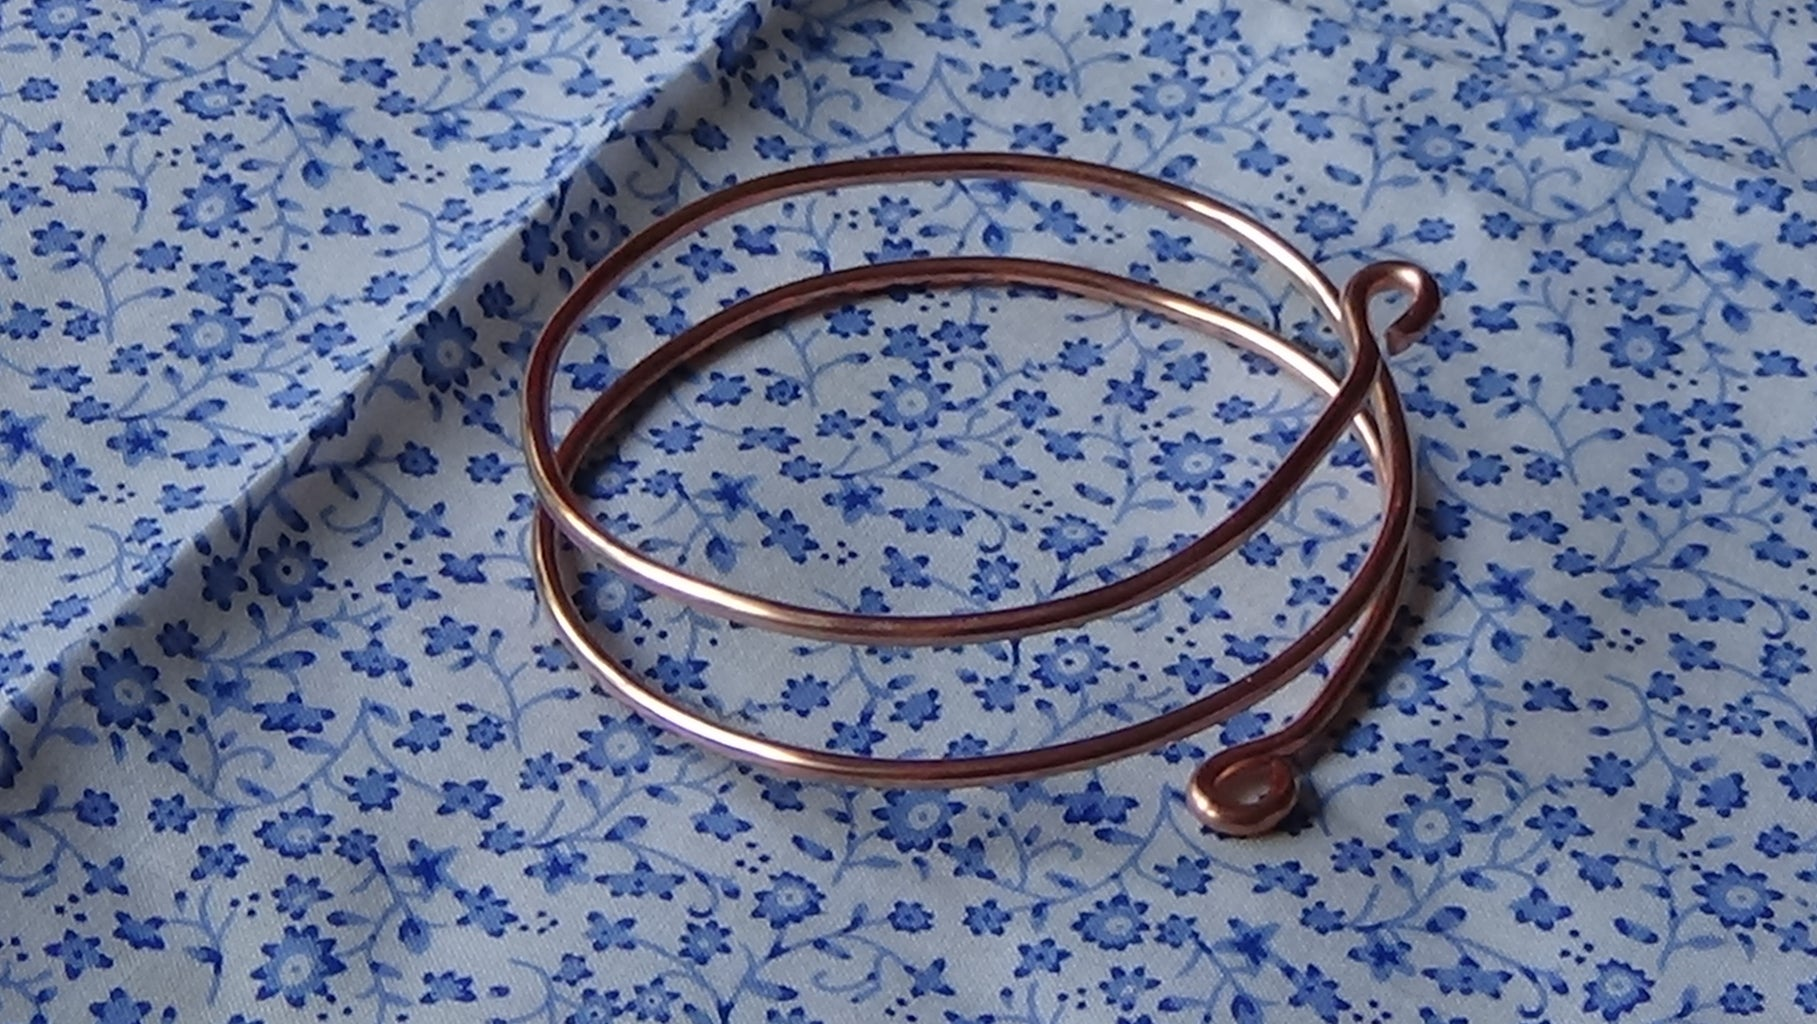 How to Make an Copper Bracelet?